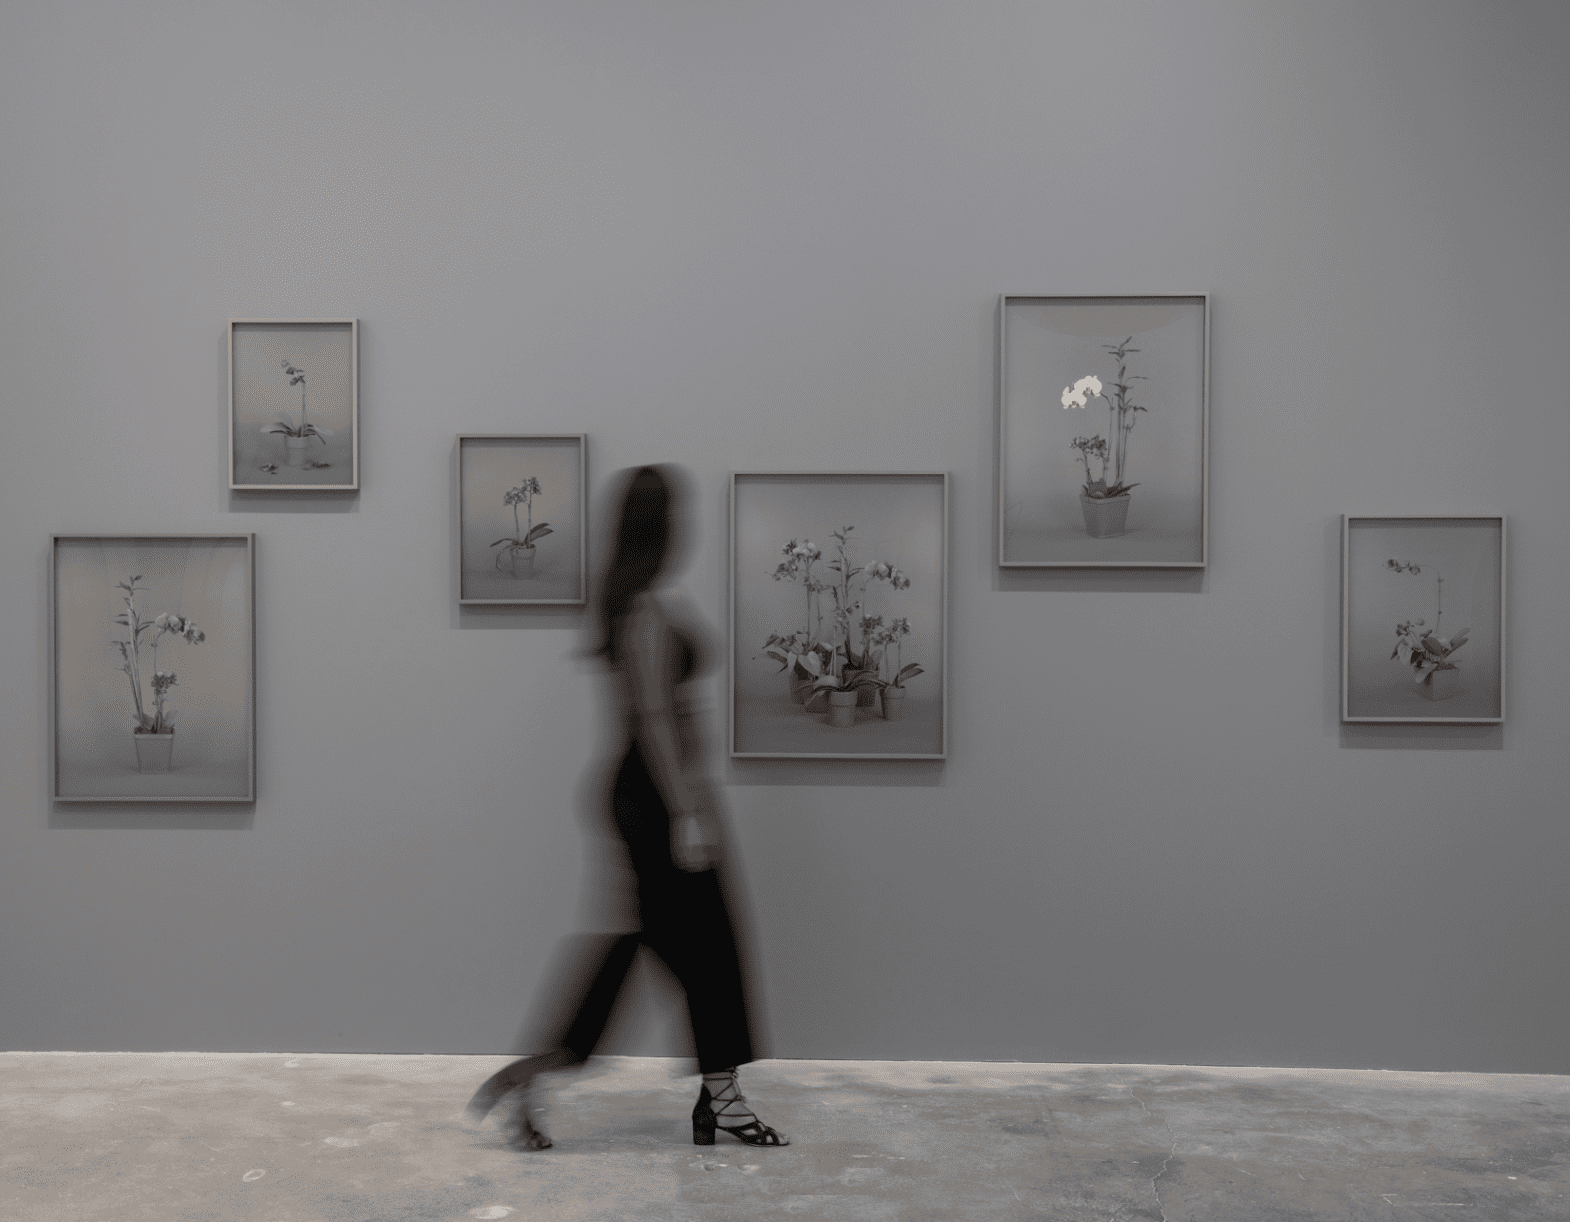 Installation view of solo exhibition